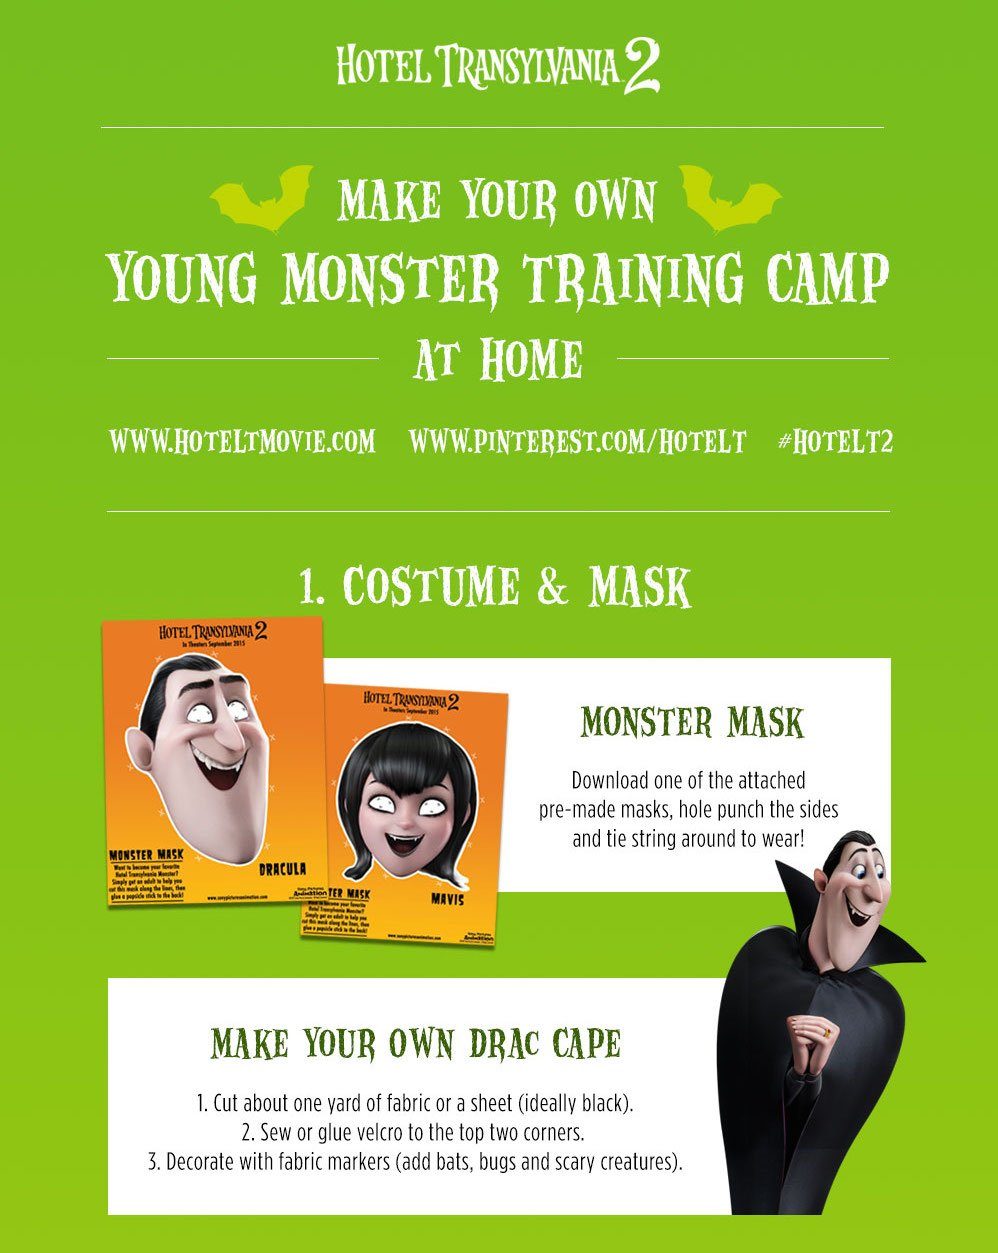 HOTEL TRANSYLVANIA 2 Young Monster Training Camp Costume